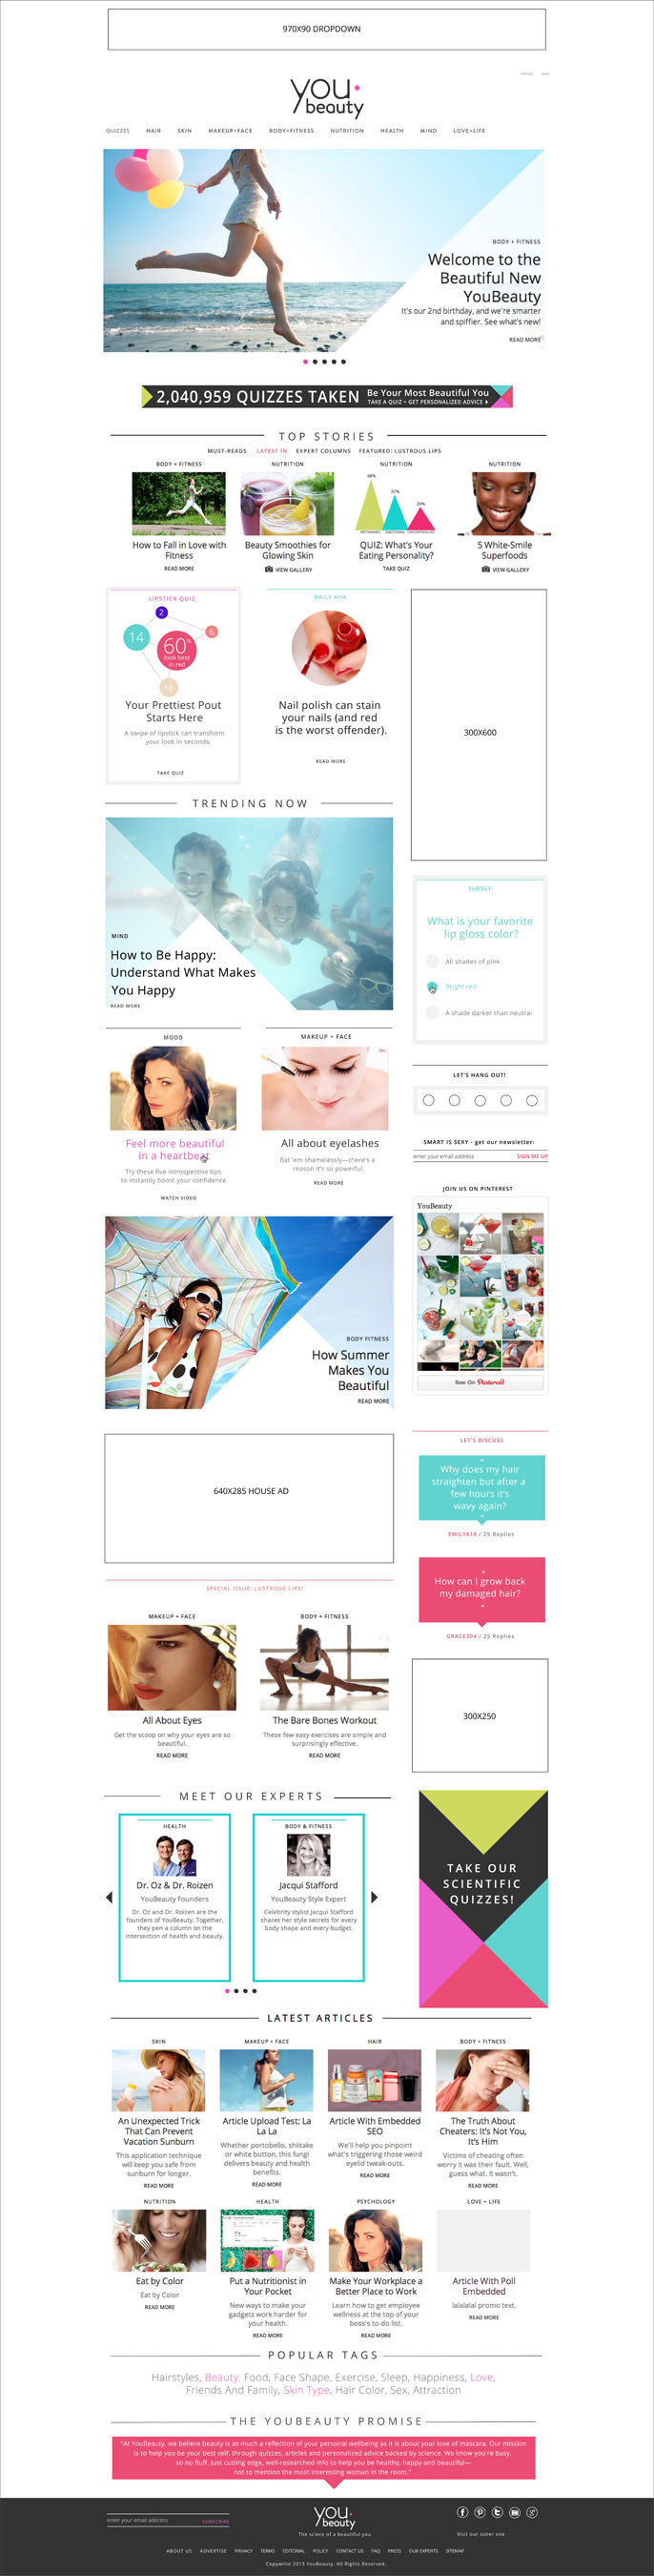 YouBeauty Unveils New Brand Identity and User Experience Powered by an Unmatched Data Story